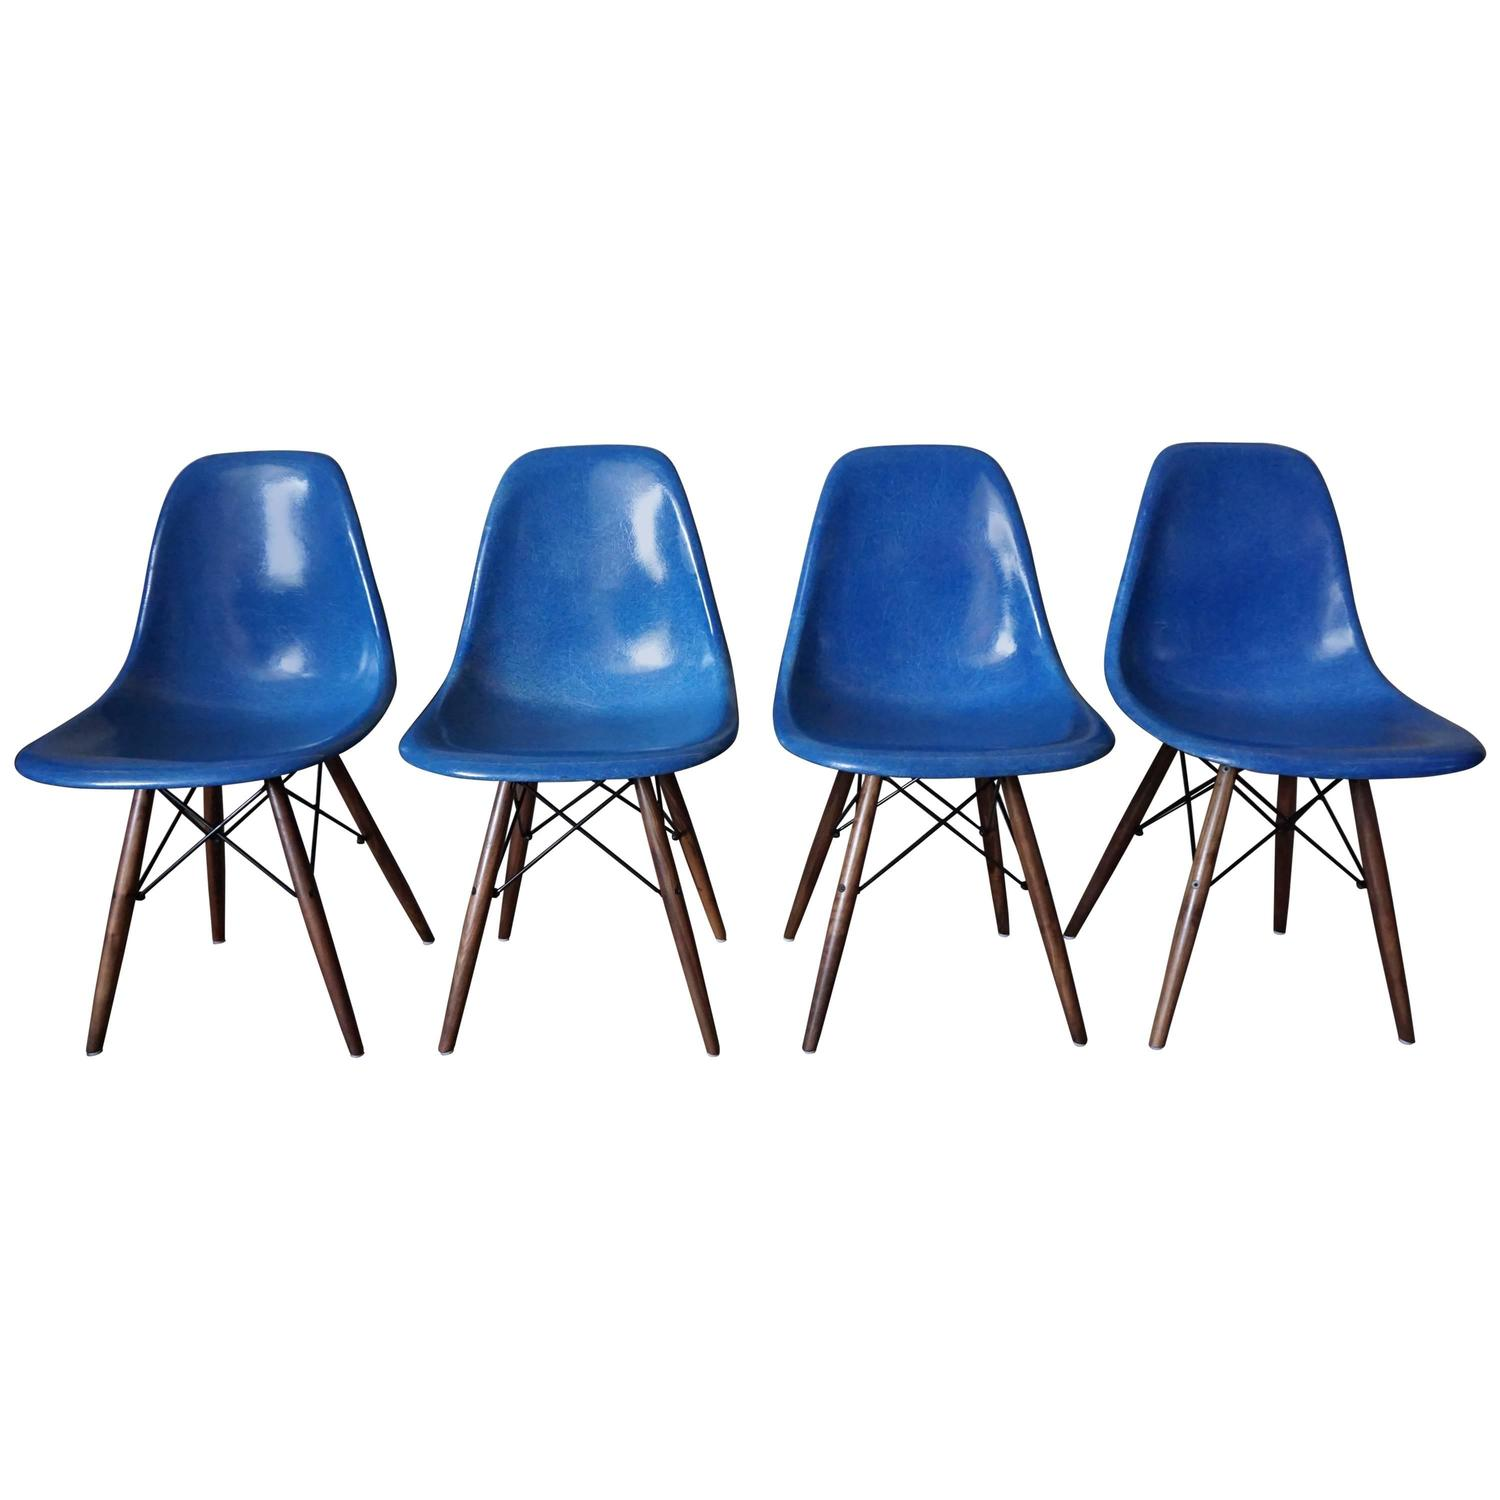 Royal blue dsw chairs by charles and ray eames 1950s set of four at